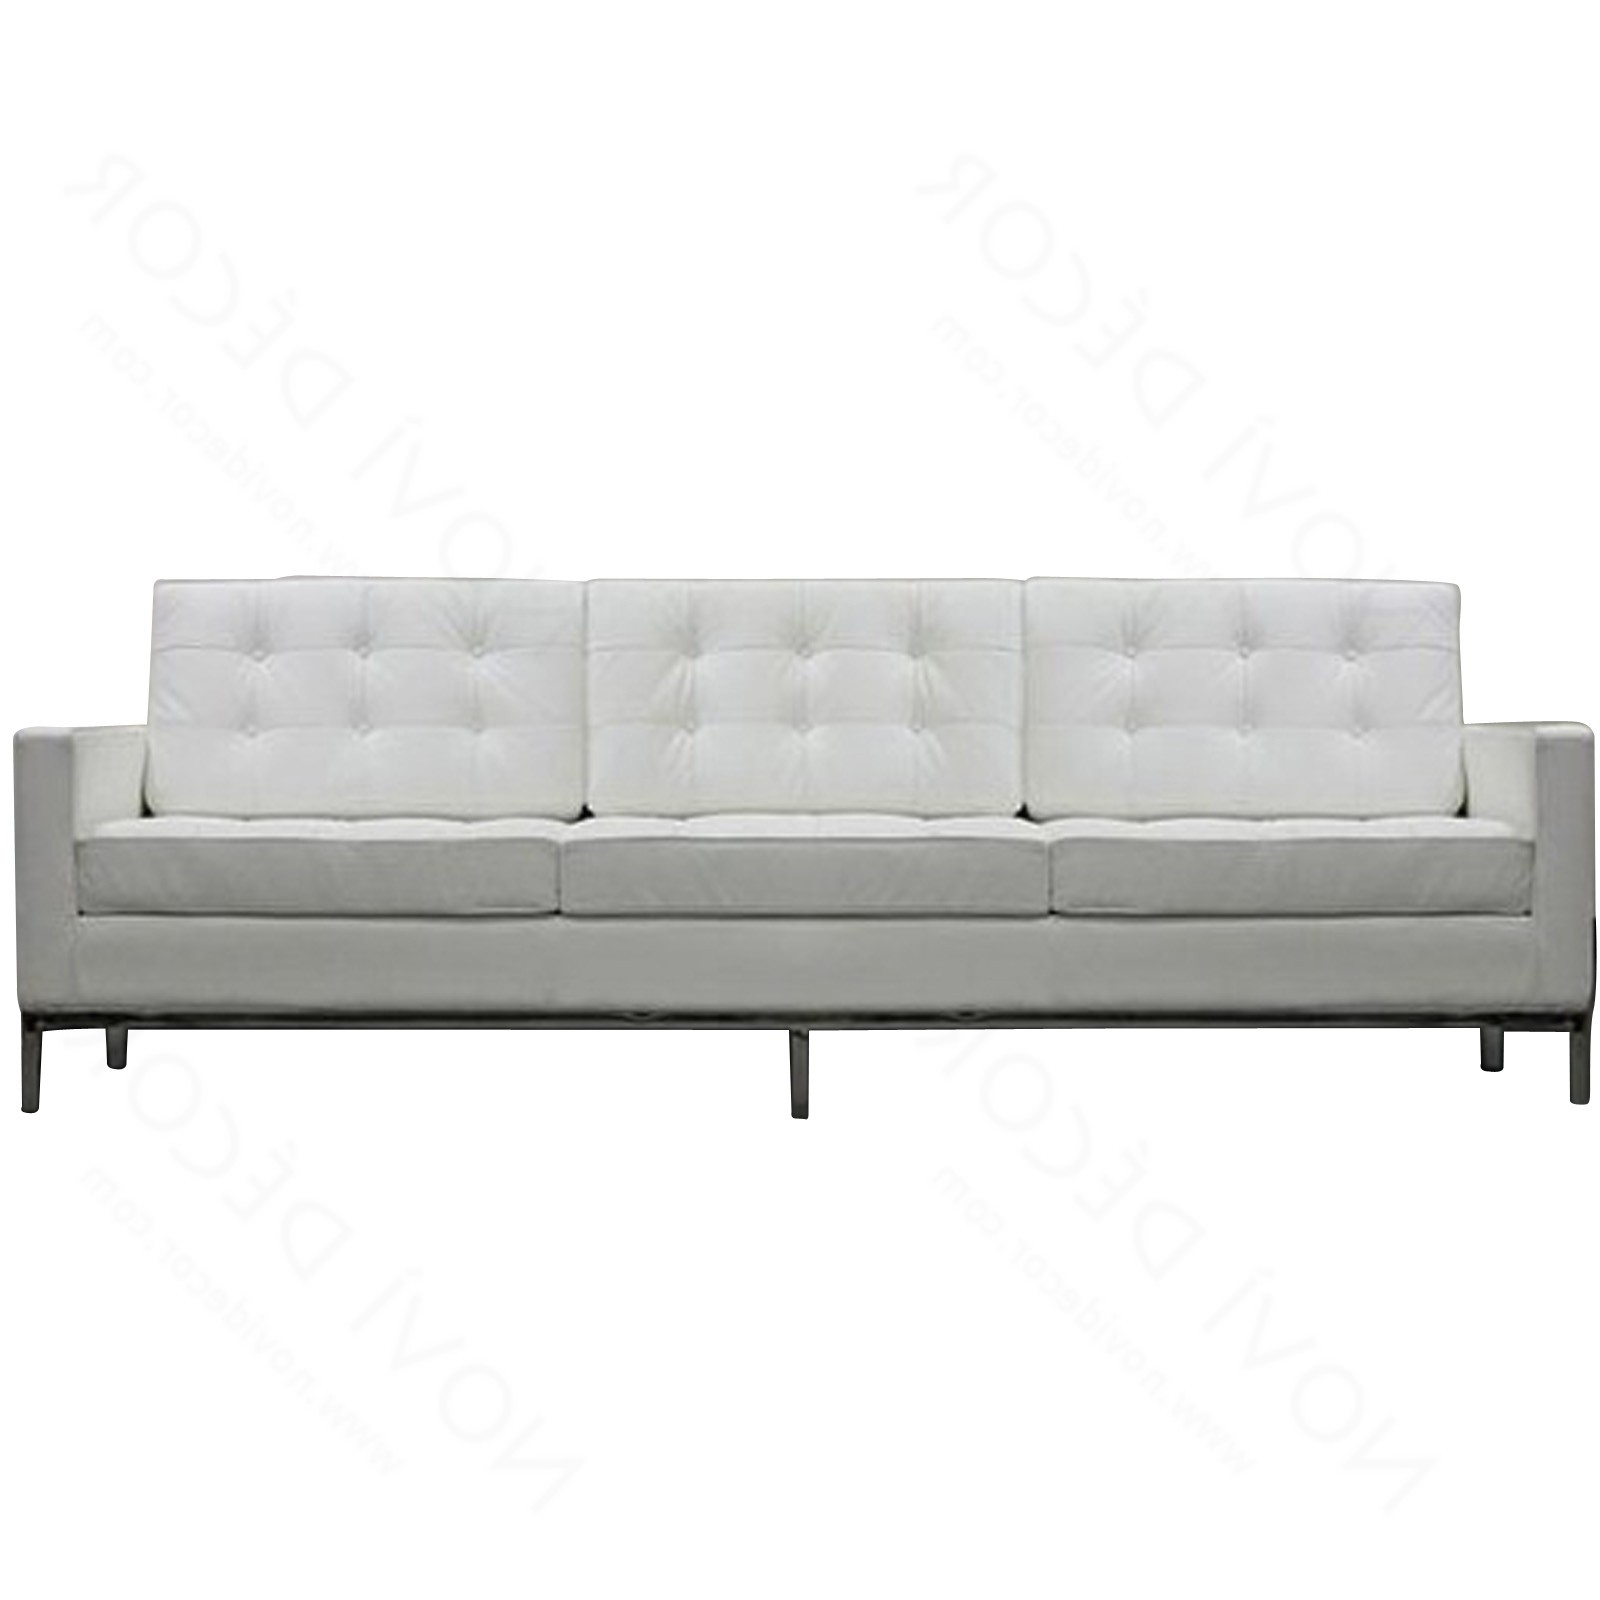 Florence Knoll Fabric Sofas Pertaining To Trendy Florence Knoll Sofa Design # (View 15 of 20)